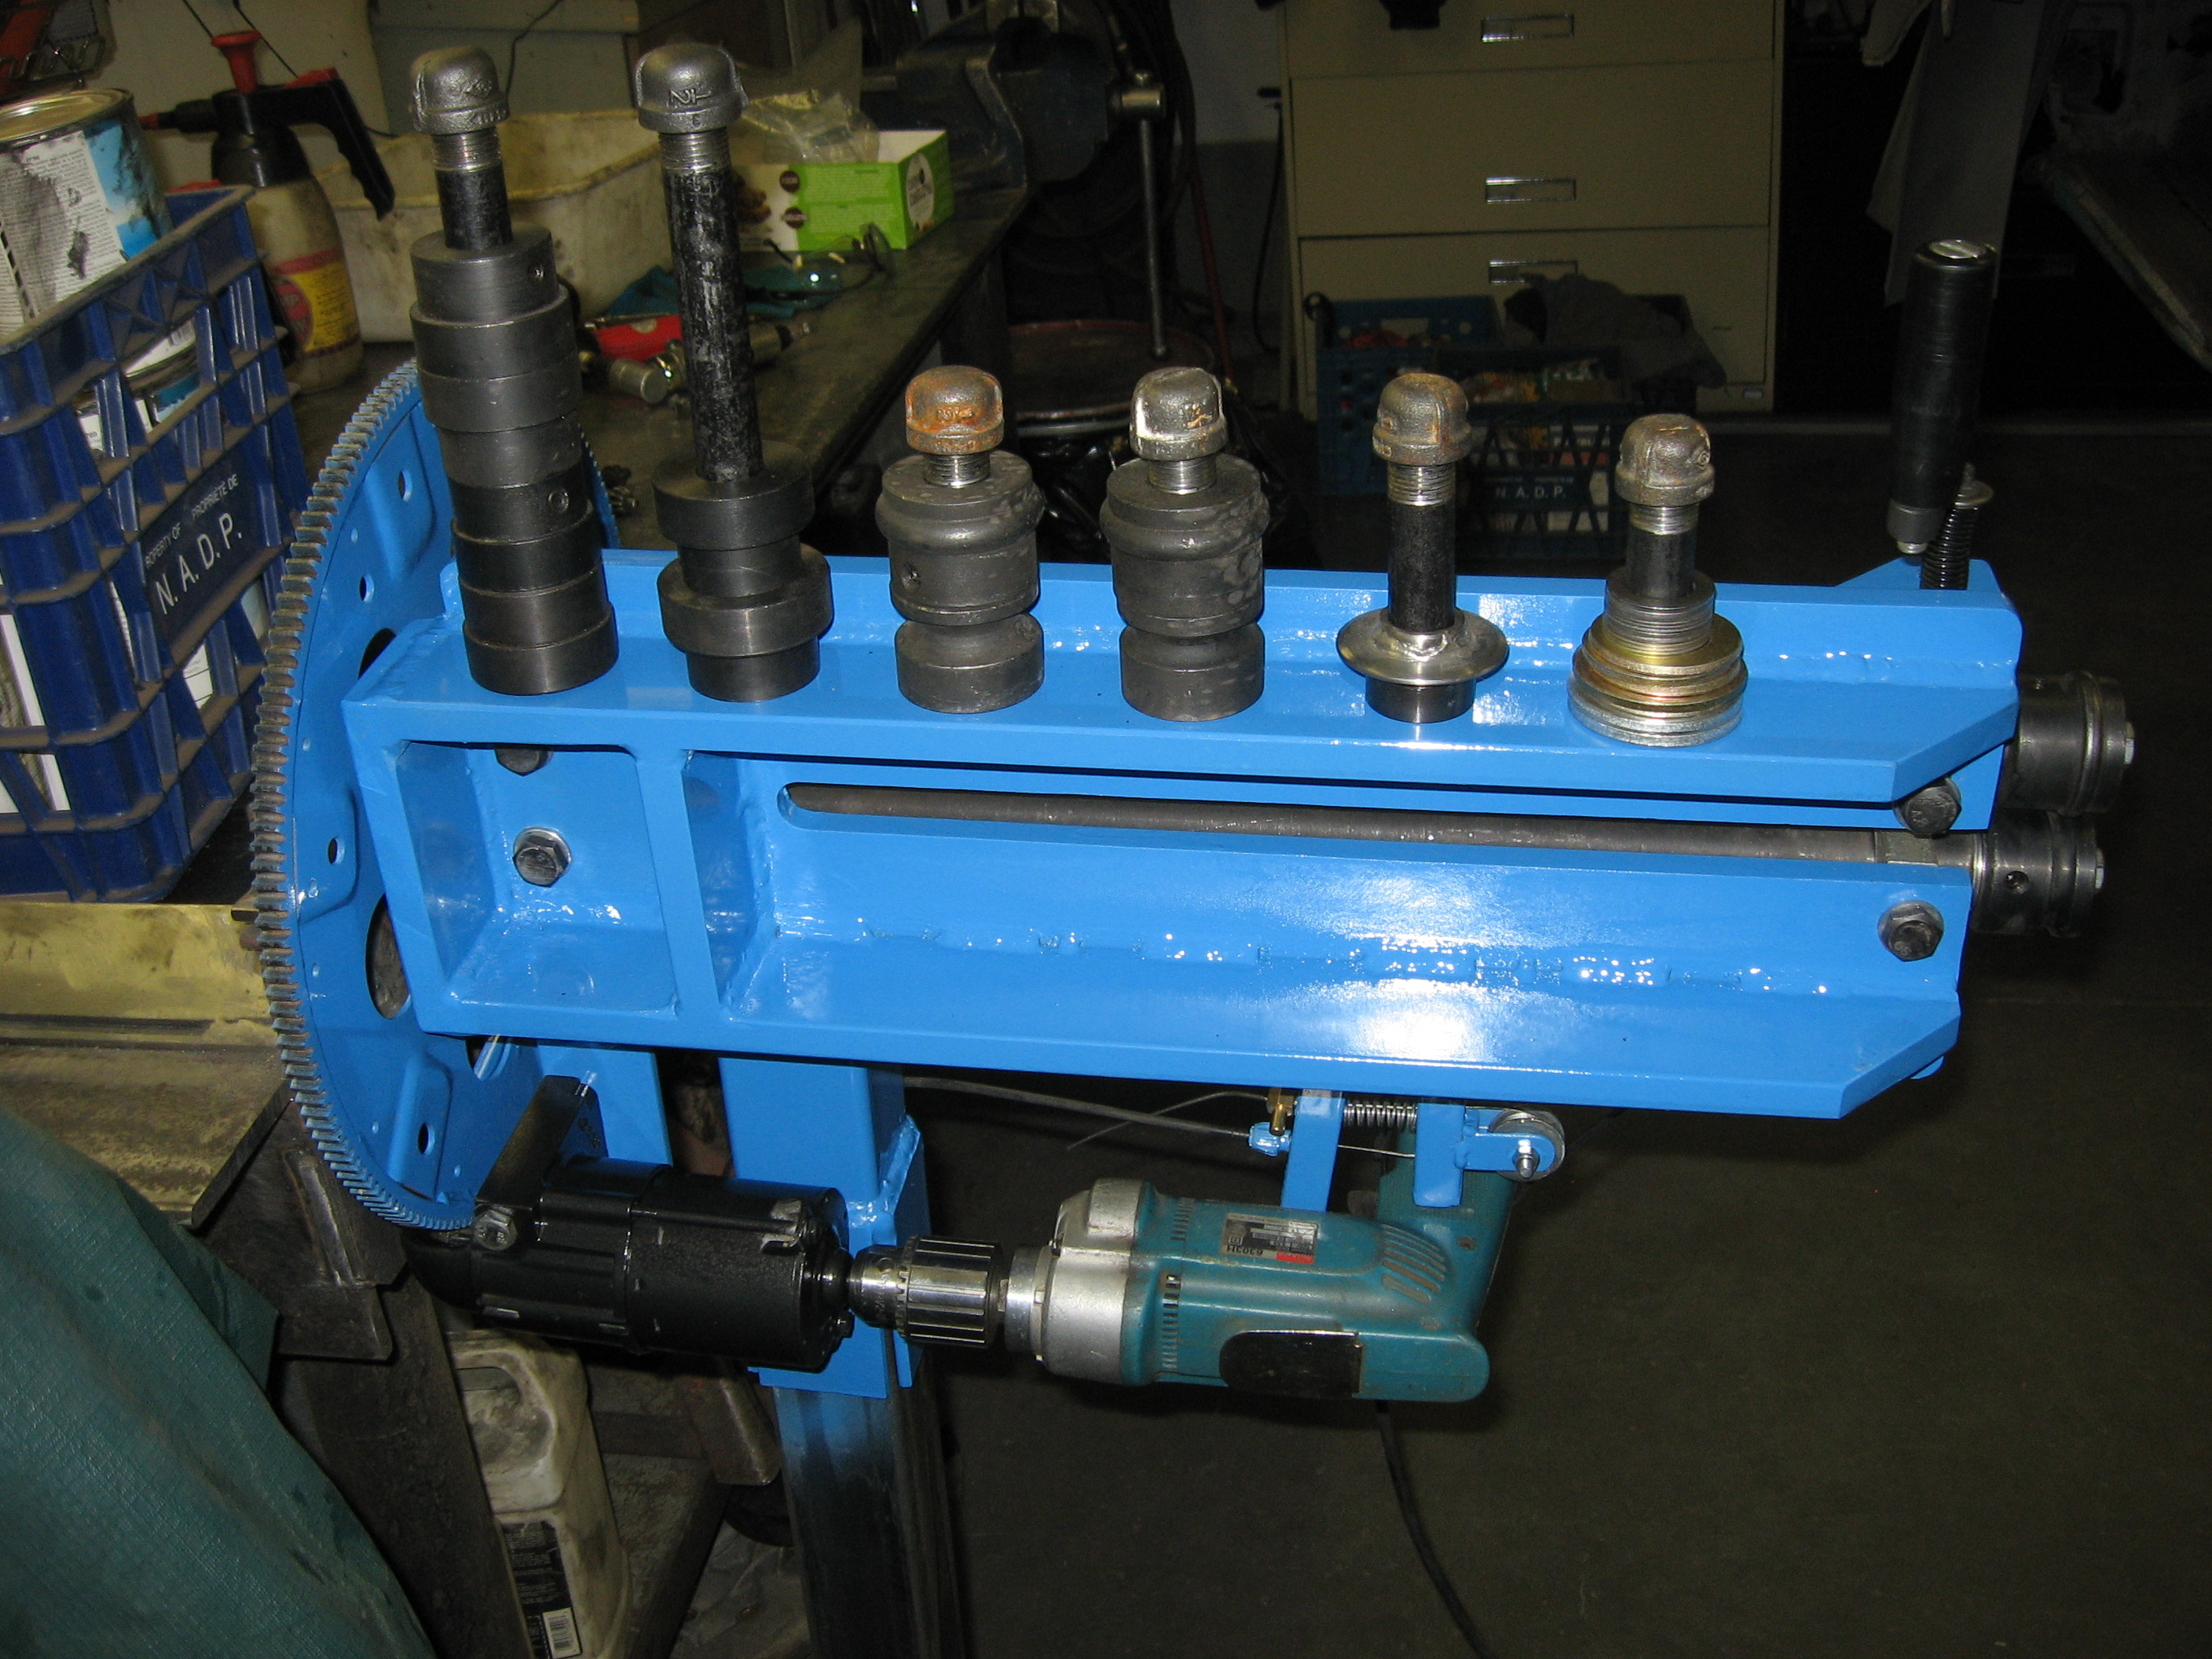 Click image for larger version  Name:bead roller and stretcher 006.jpg Views:194 Size:1.48 MB ID:118825